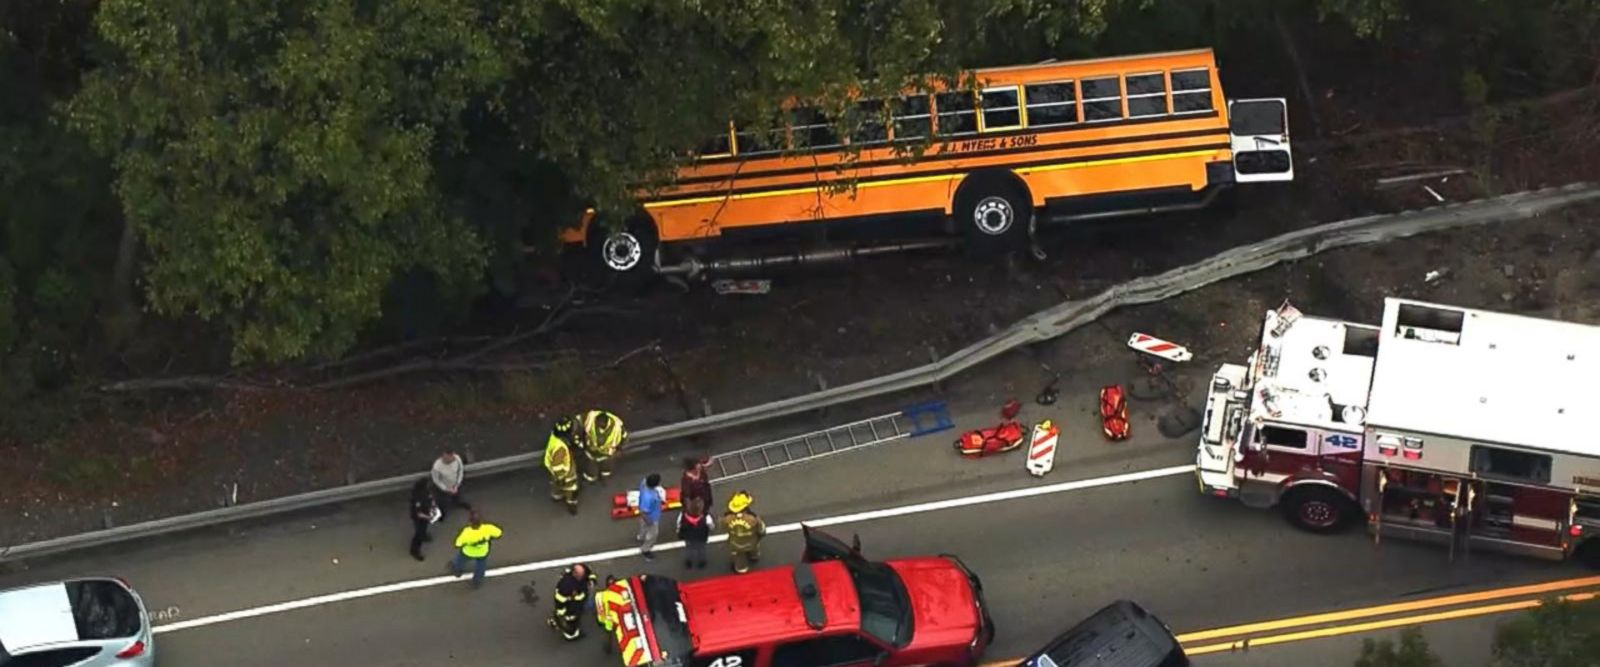 VIDEO: Students treated for minor injuries after school bus crash